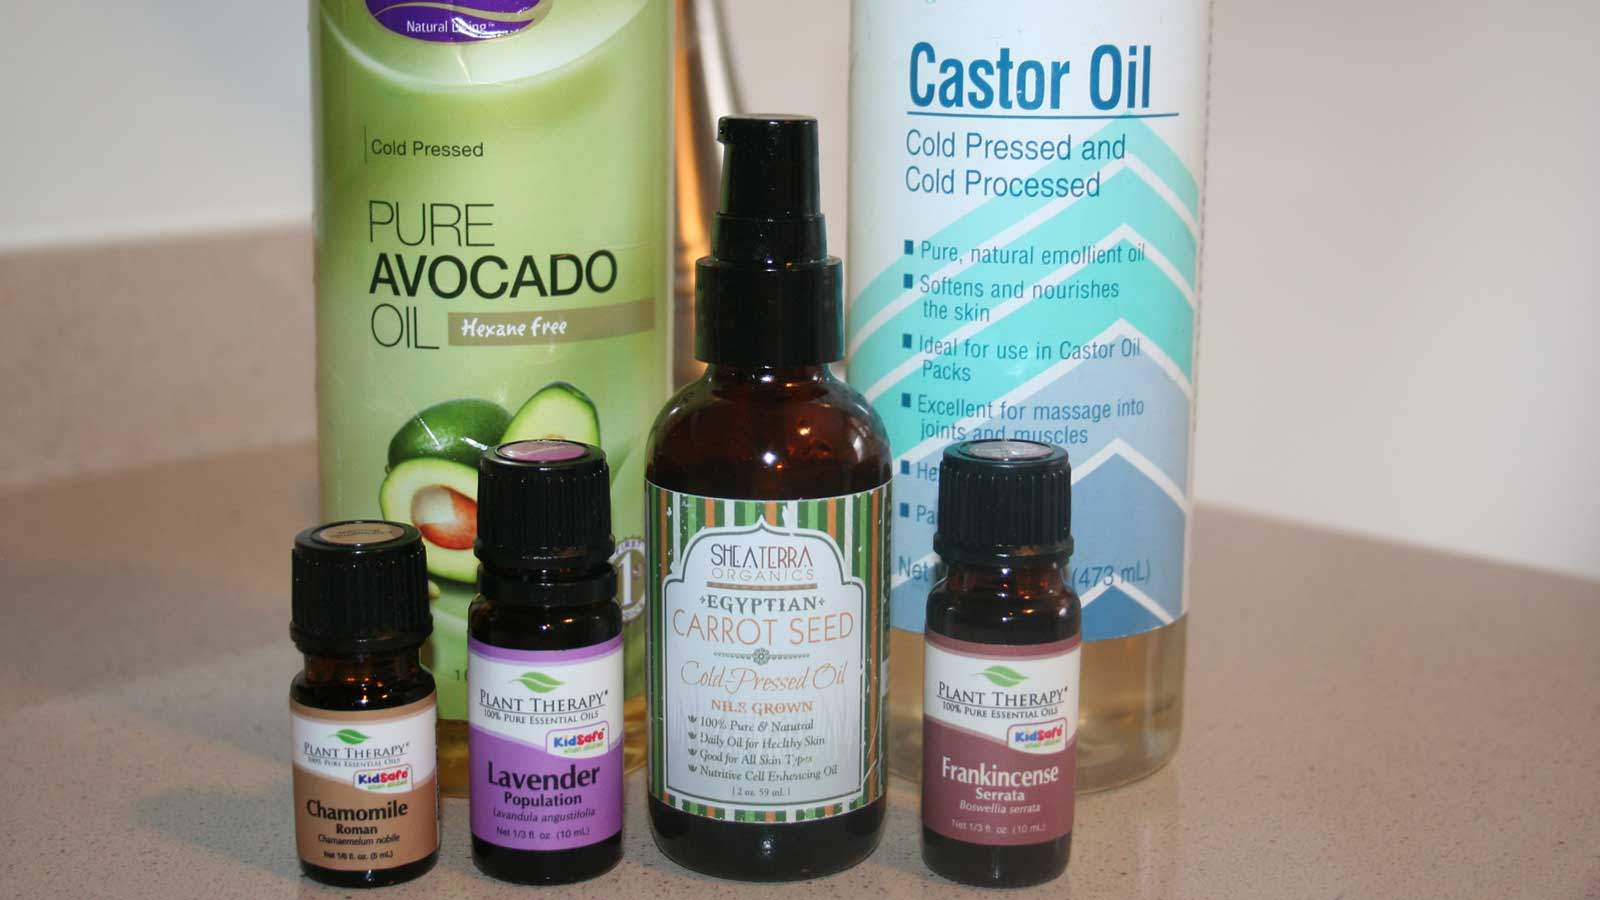 Ingredients for the oil cleansing method, including avocado oil, castor oil, carrot seed oil and plant therapy essential oils.